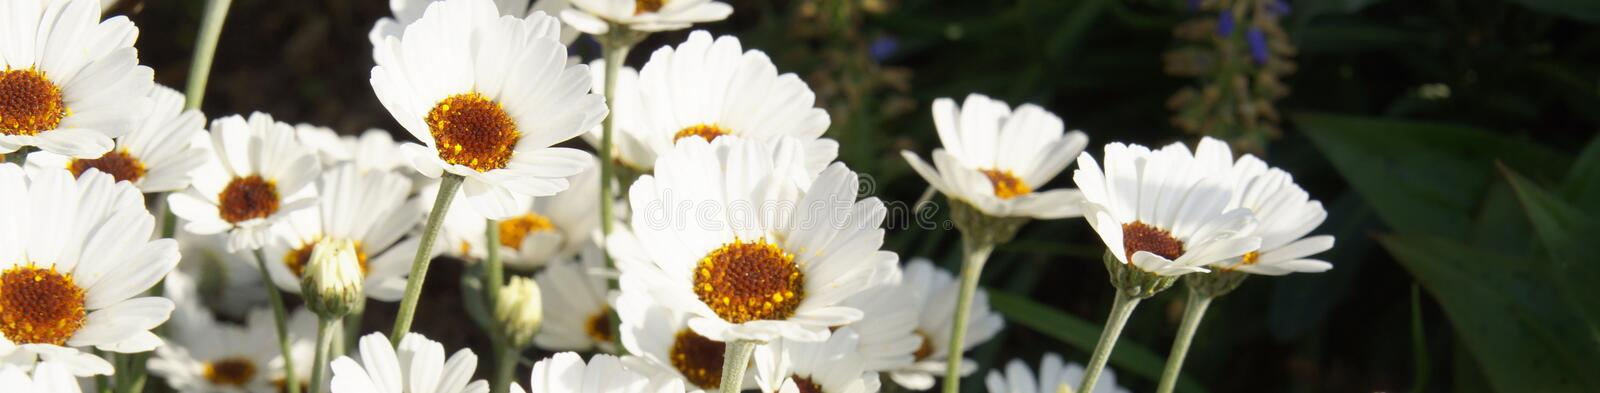 Panoramic view of Flowering of daisies. marguerites Leucanthemum are a genus of flowering plants in the daisy family. Flowering of marguerites Leucanthemum stock photography